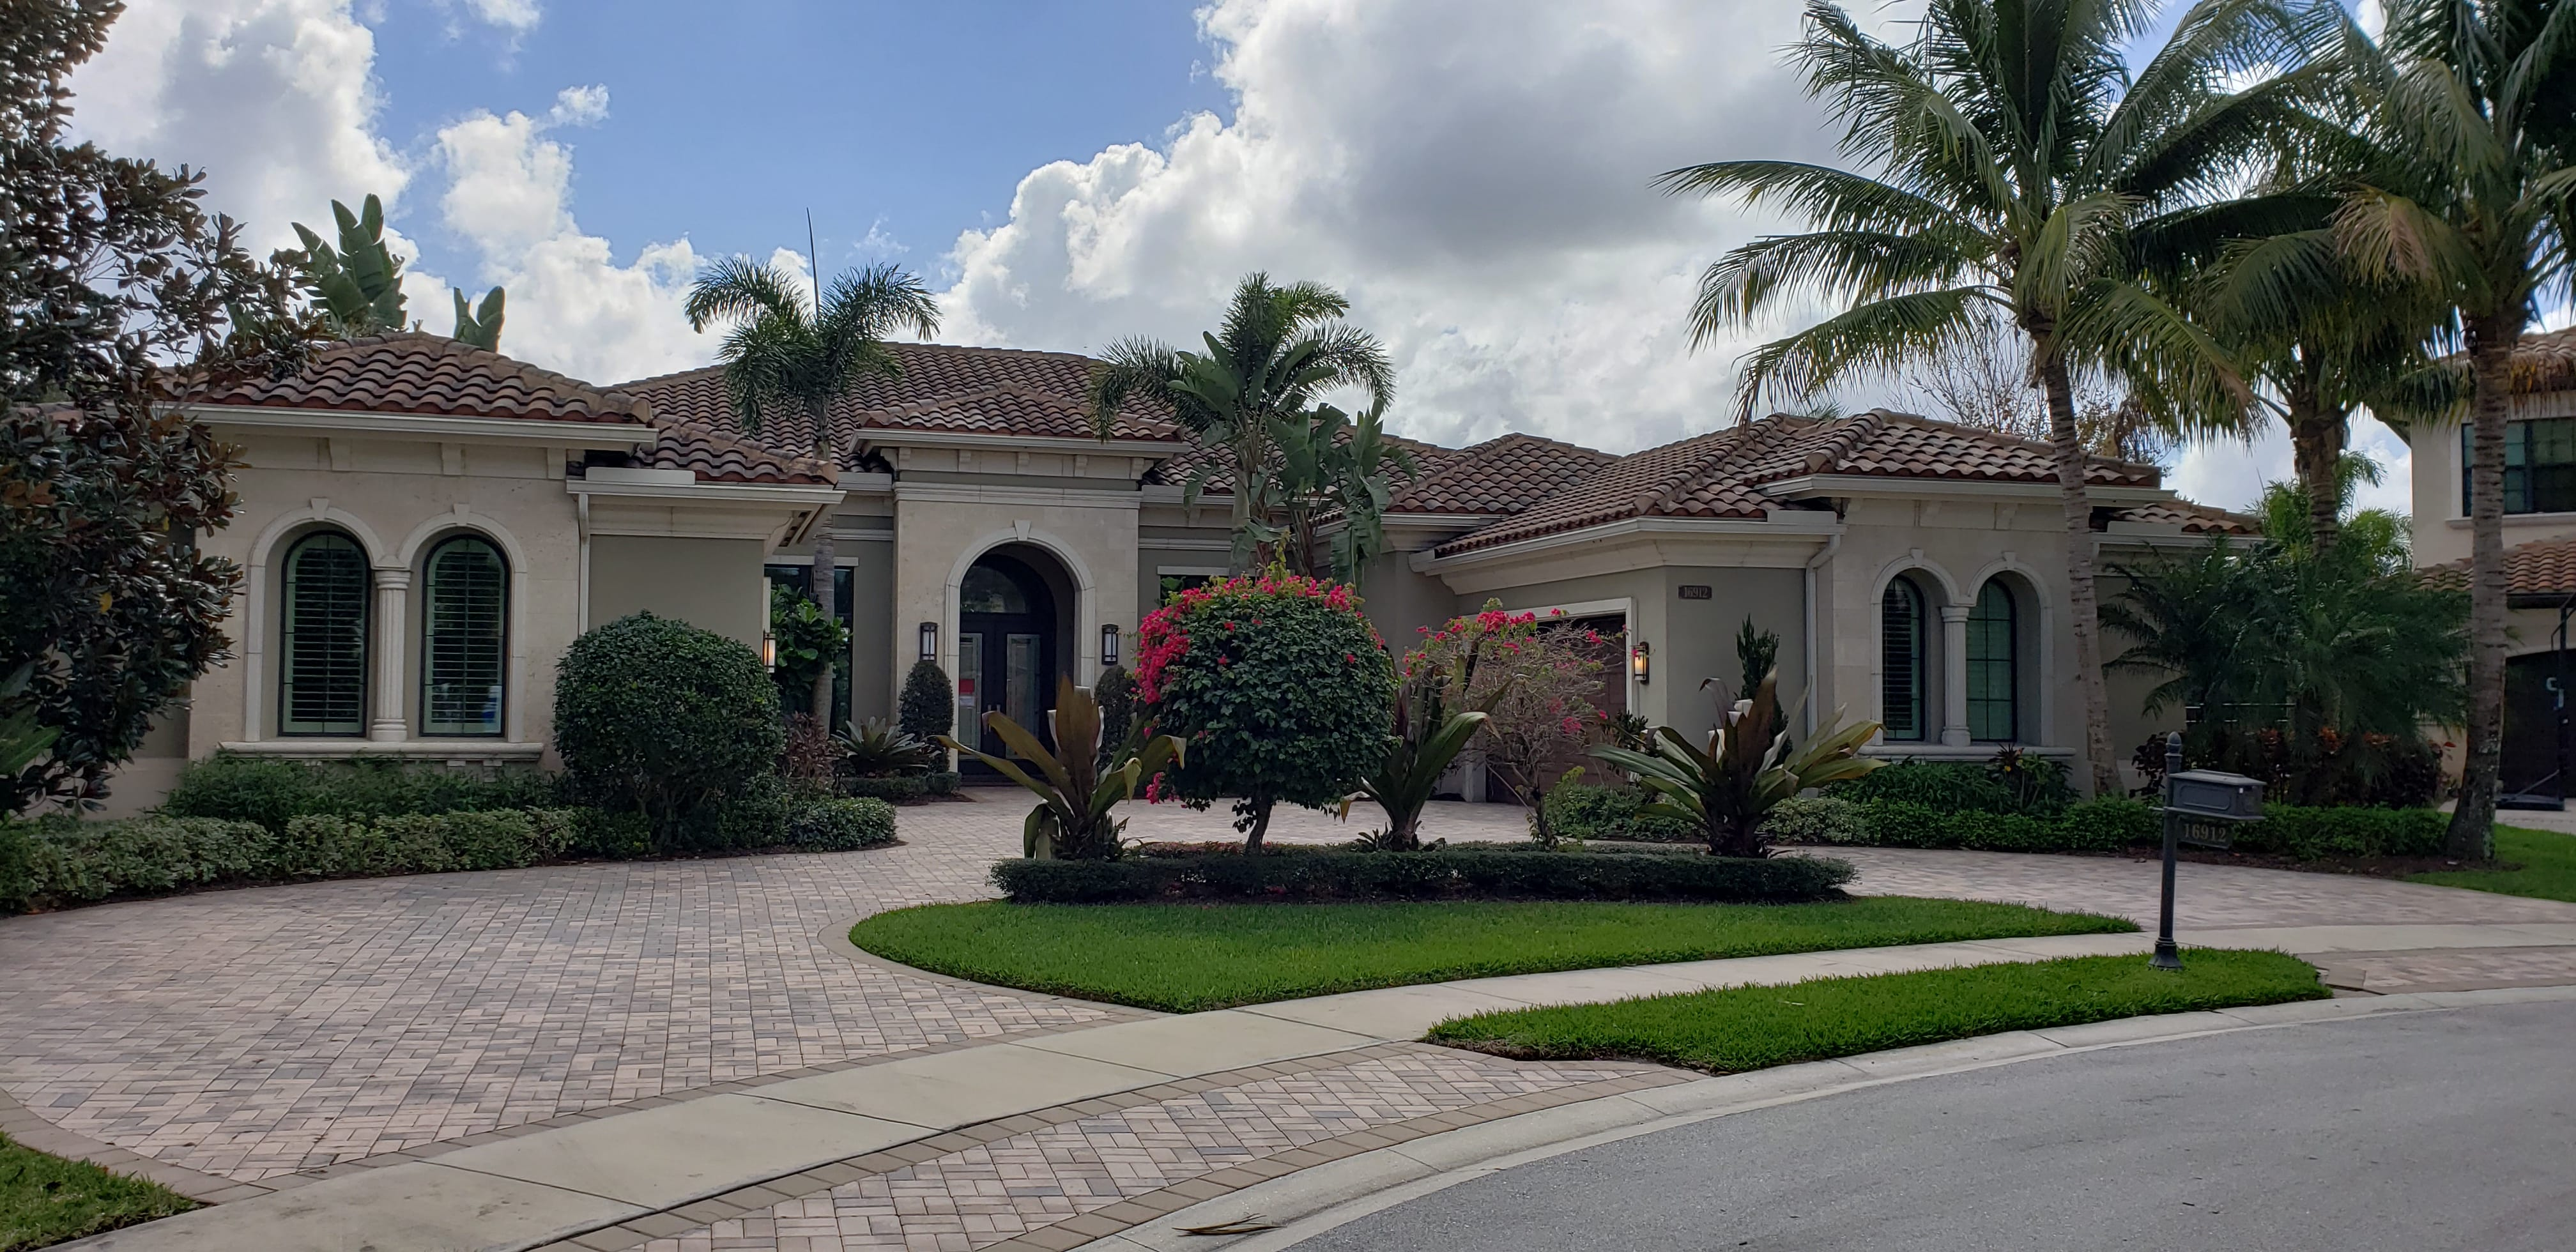 16912 Crown Brdg Dr Delray Bch Feb 2019 (50)